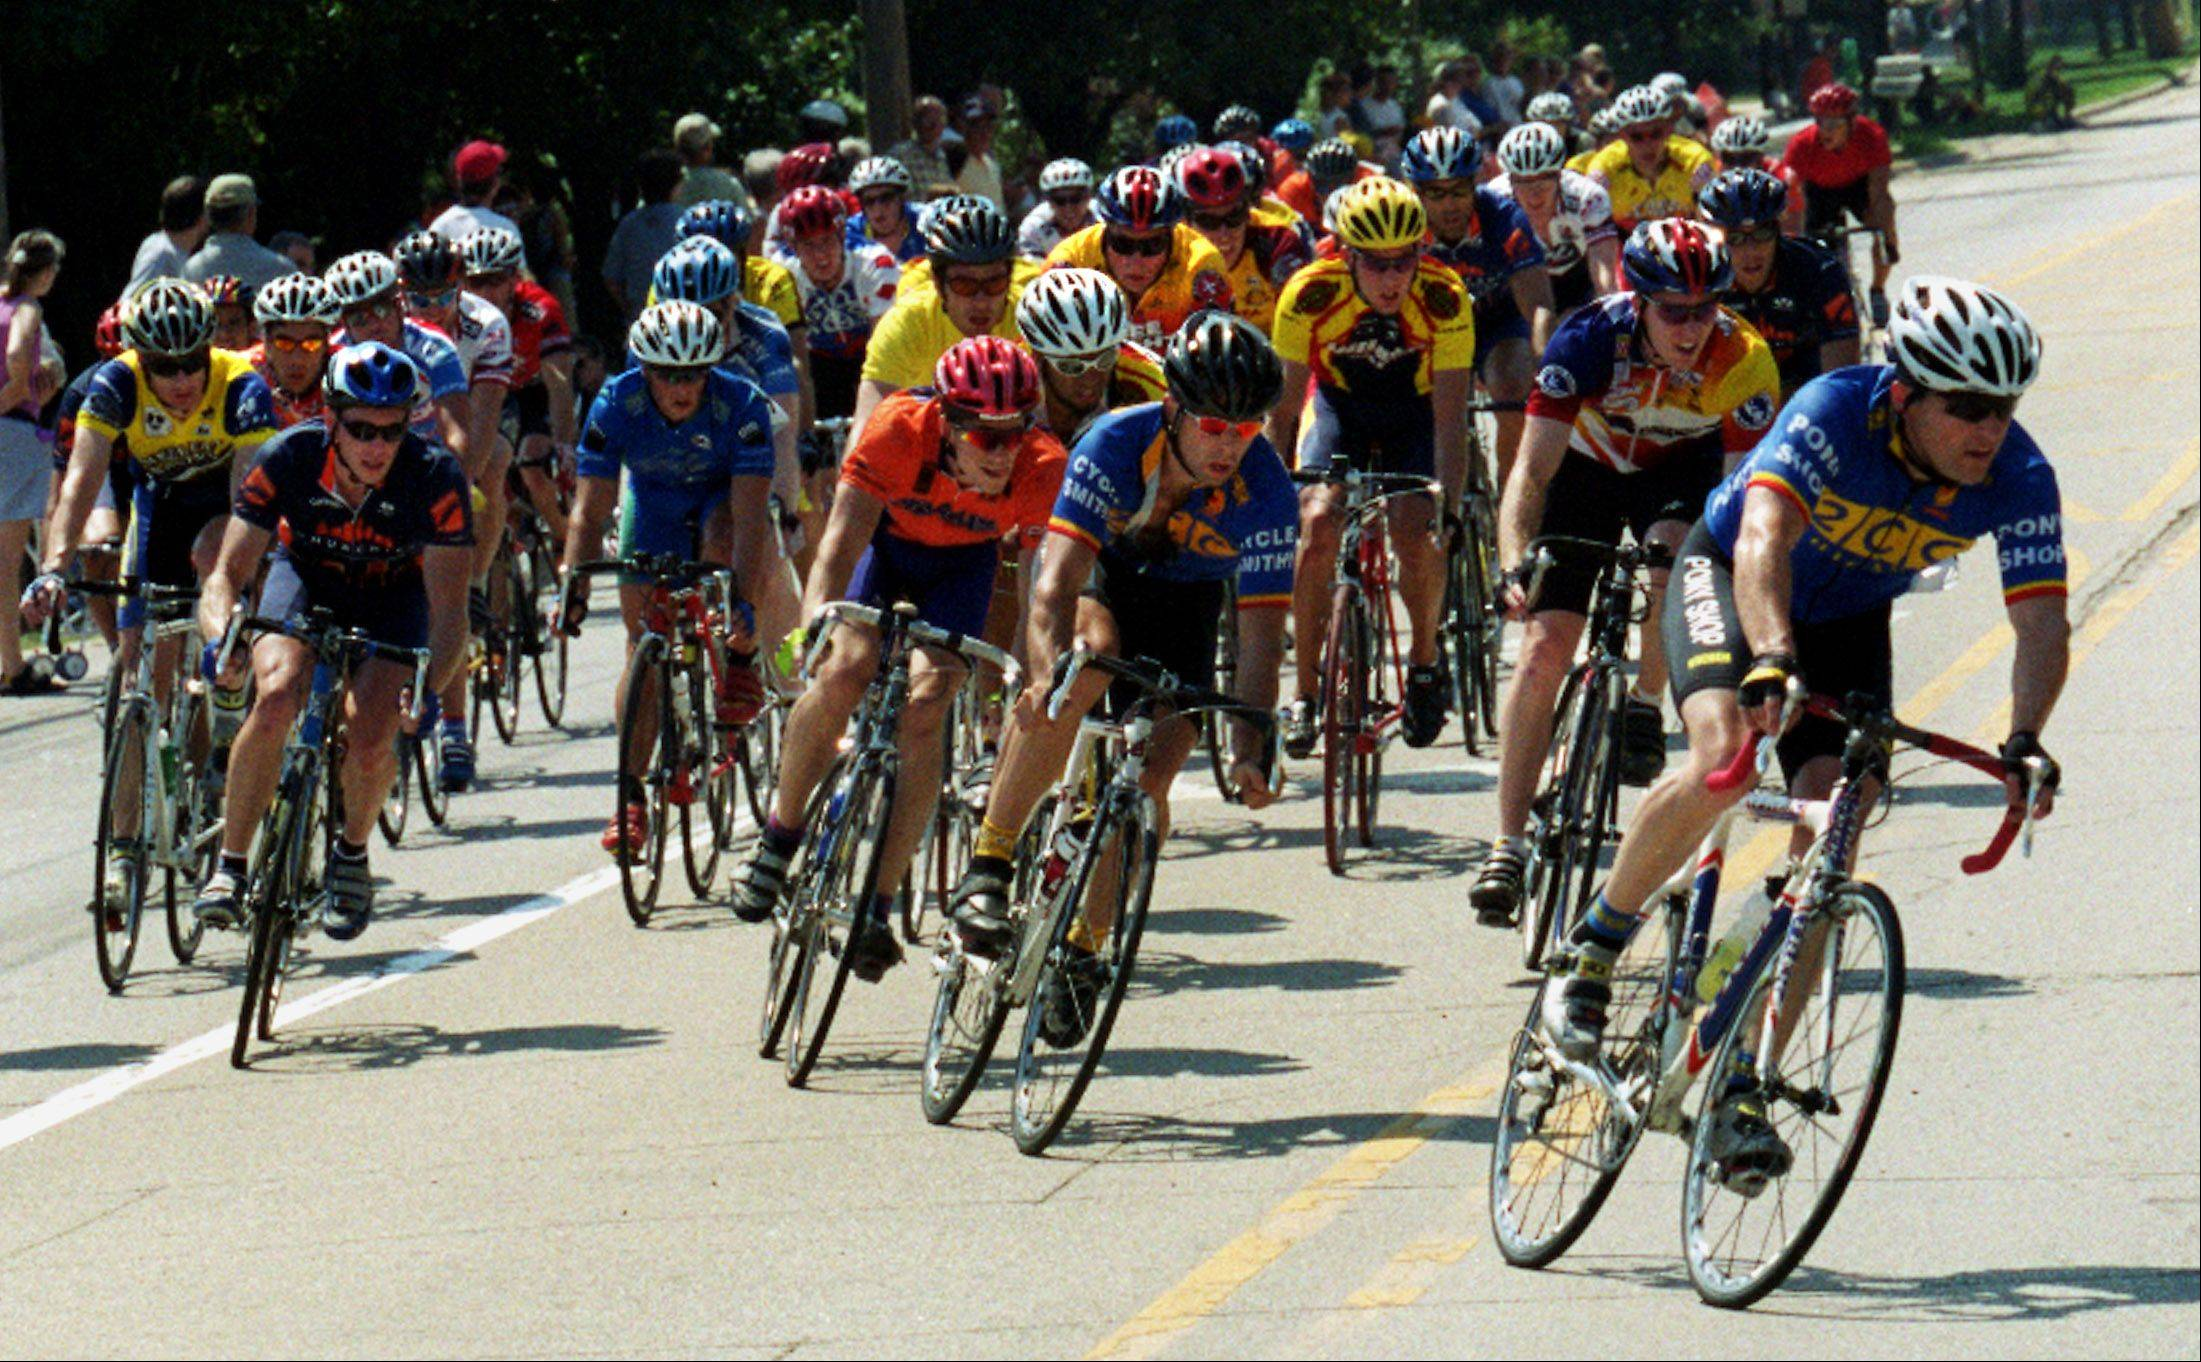 The 2011 Winfield Criterium races through downtown Winfield on Saturday and Sunday, Aug. 13 and 14. This is the 12th year the two-day racing event has been organized by the Athletes by Design Cycle Club.